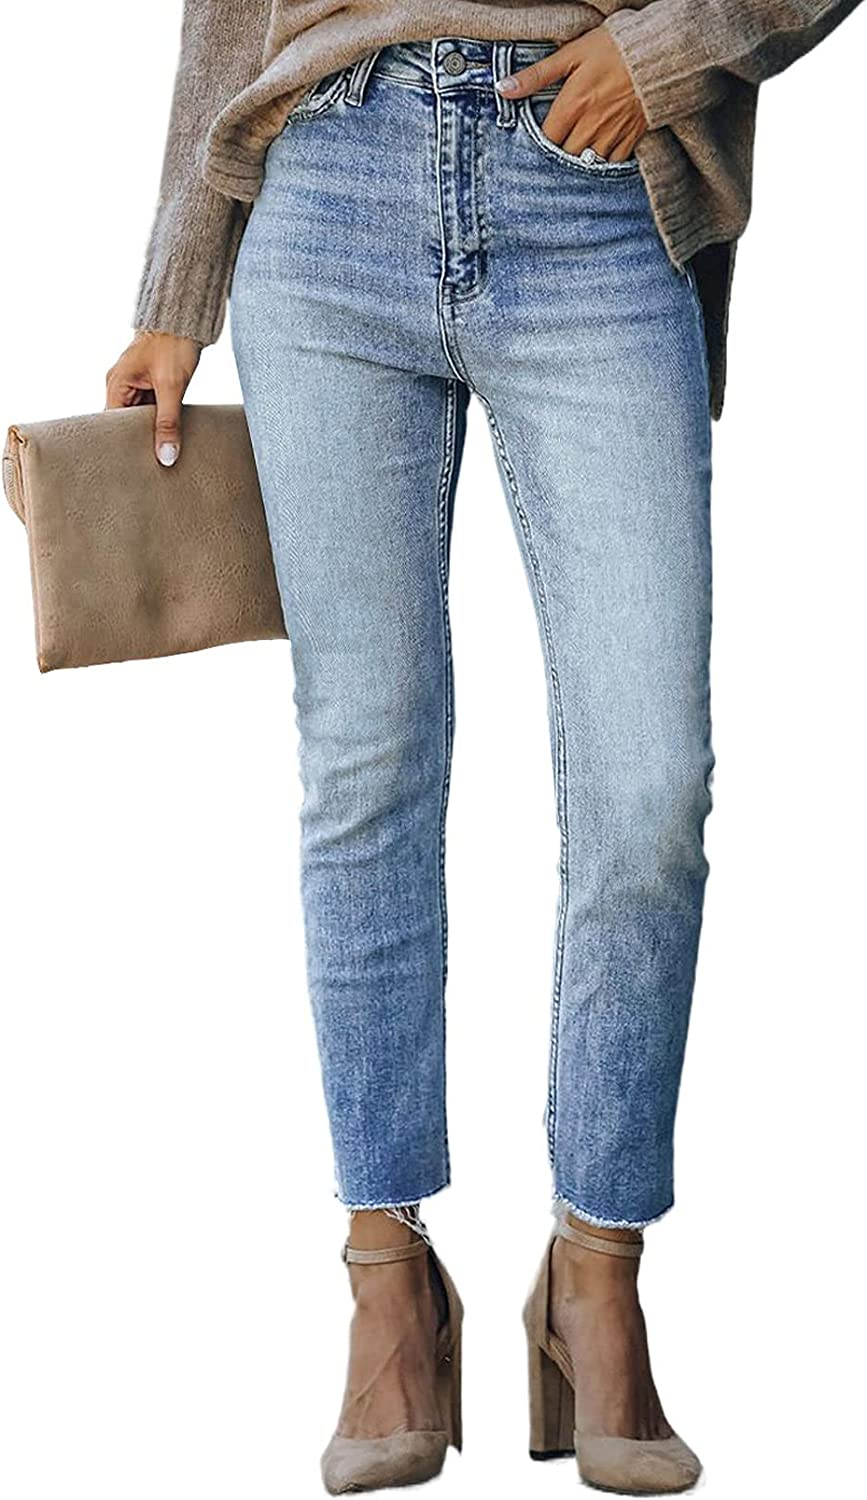 Asvivid Classic High Rise Ankle Skinny Jeans for Women Stretch Ripped Denim Pants Slim Fit Distressed Bootcut Jean